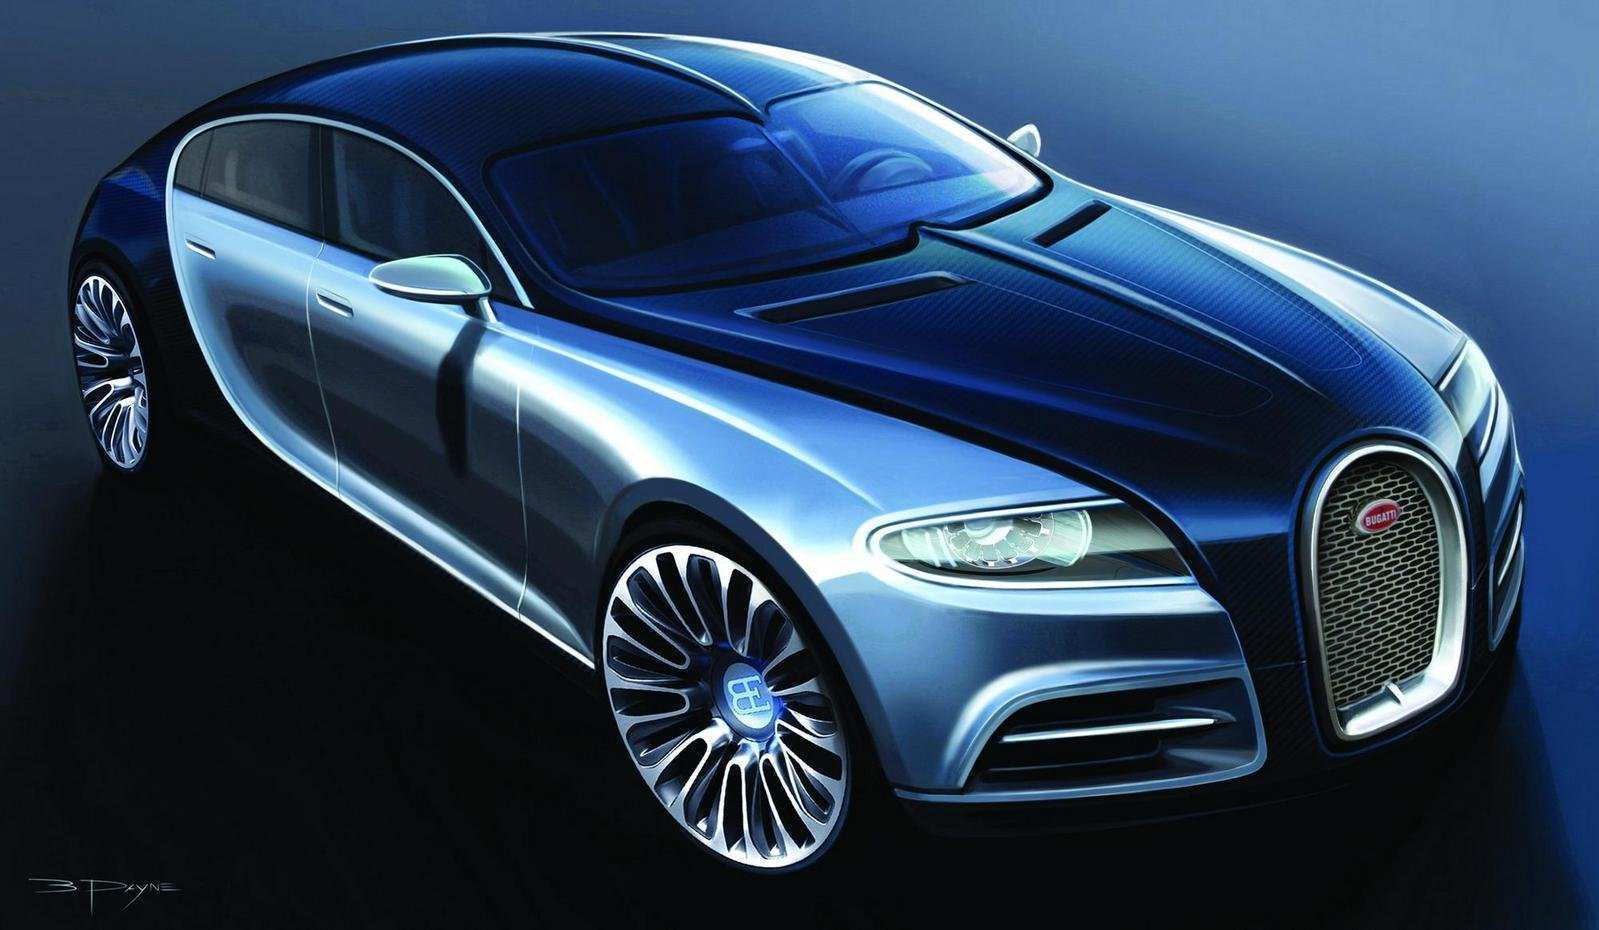 72 All New Bugatti Galibier 2020 New Model And Performance